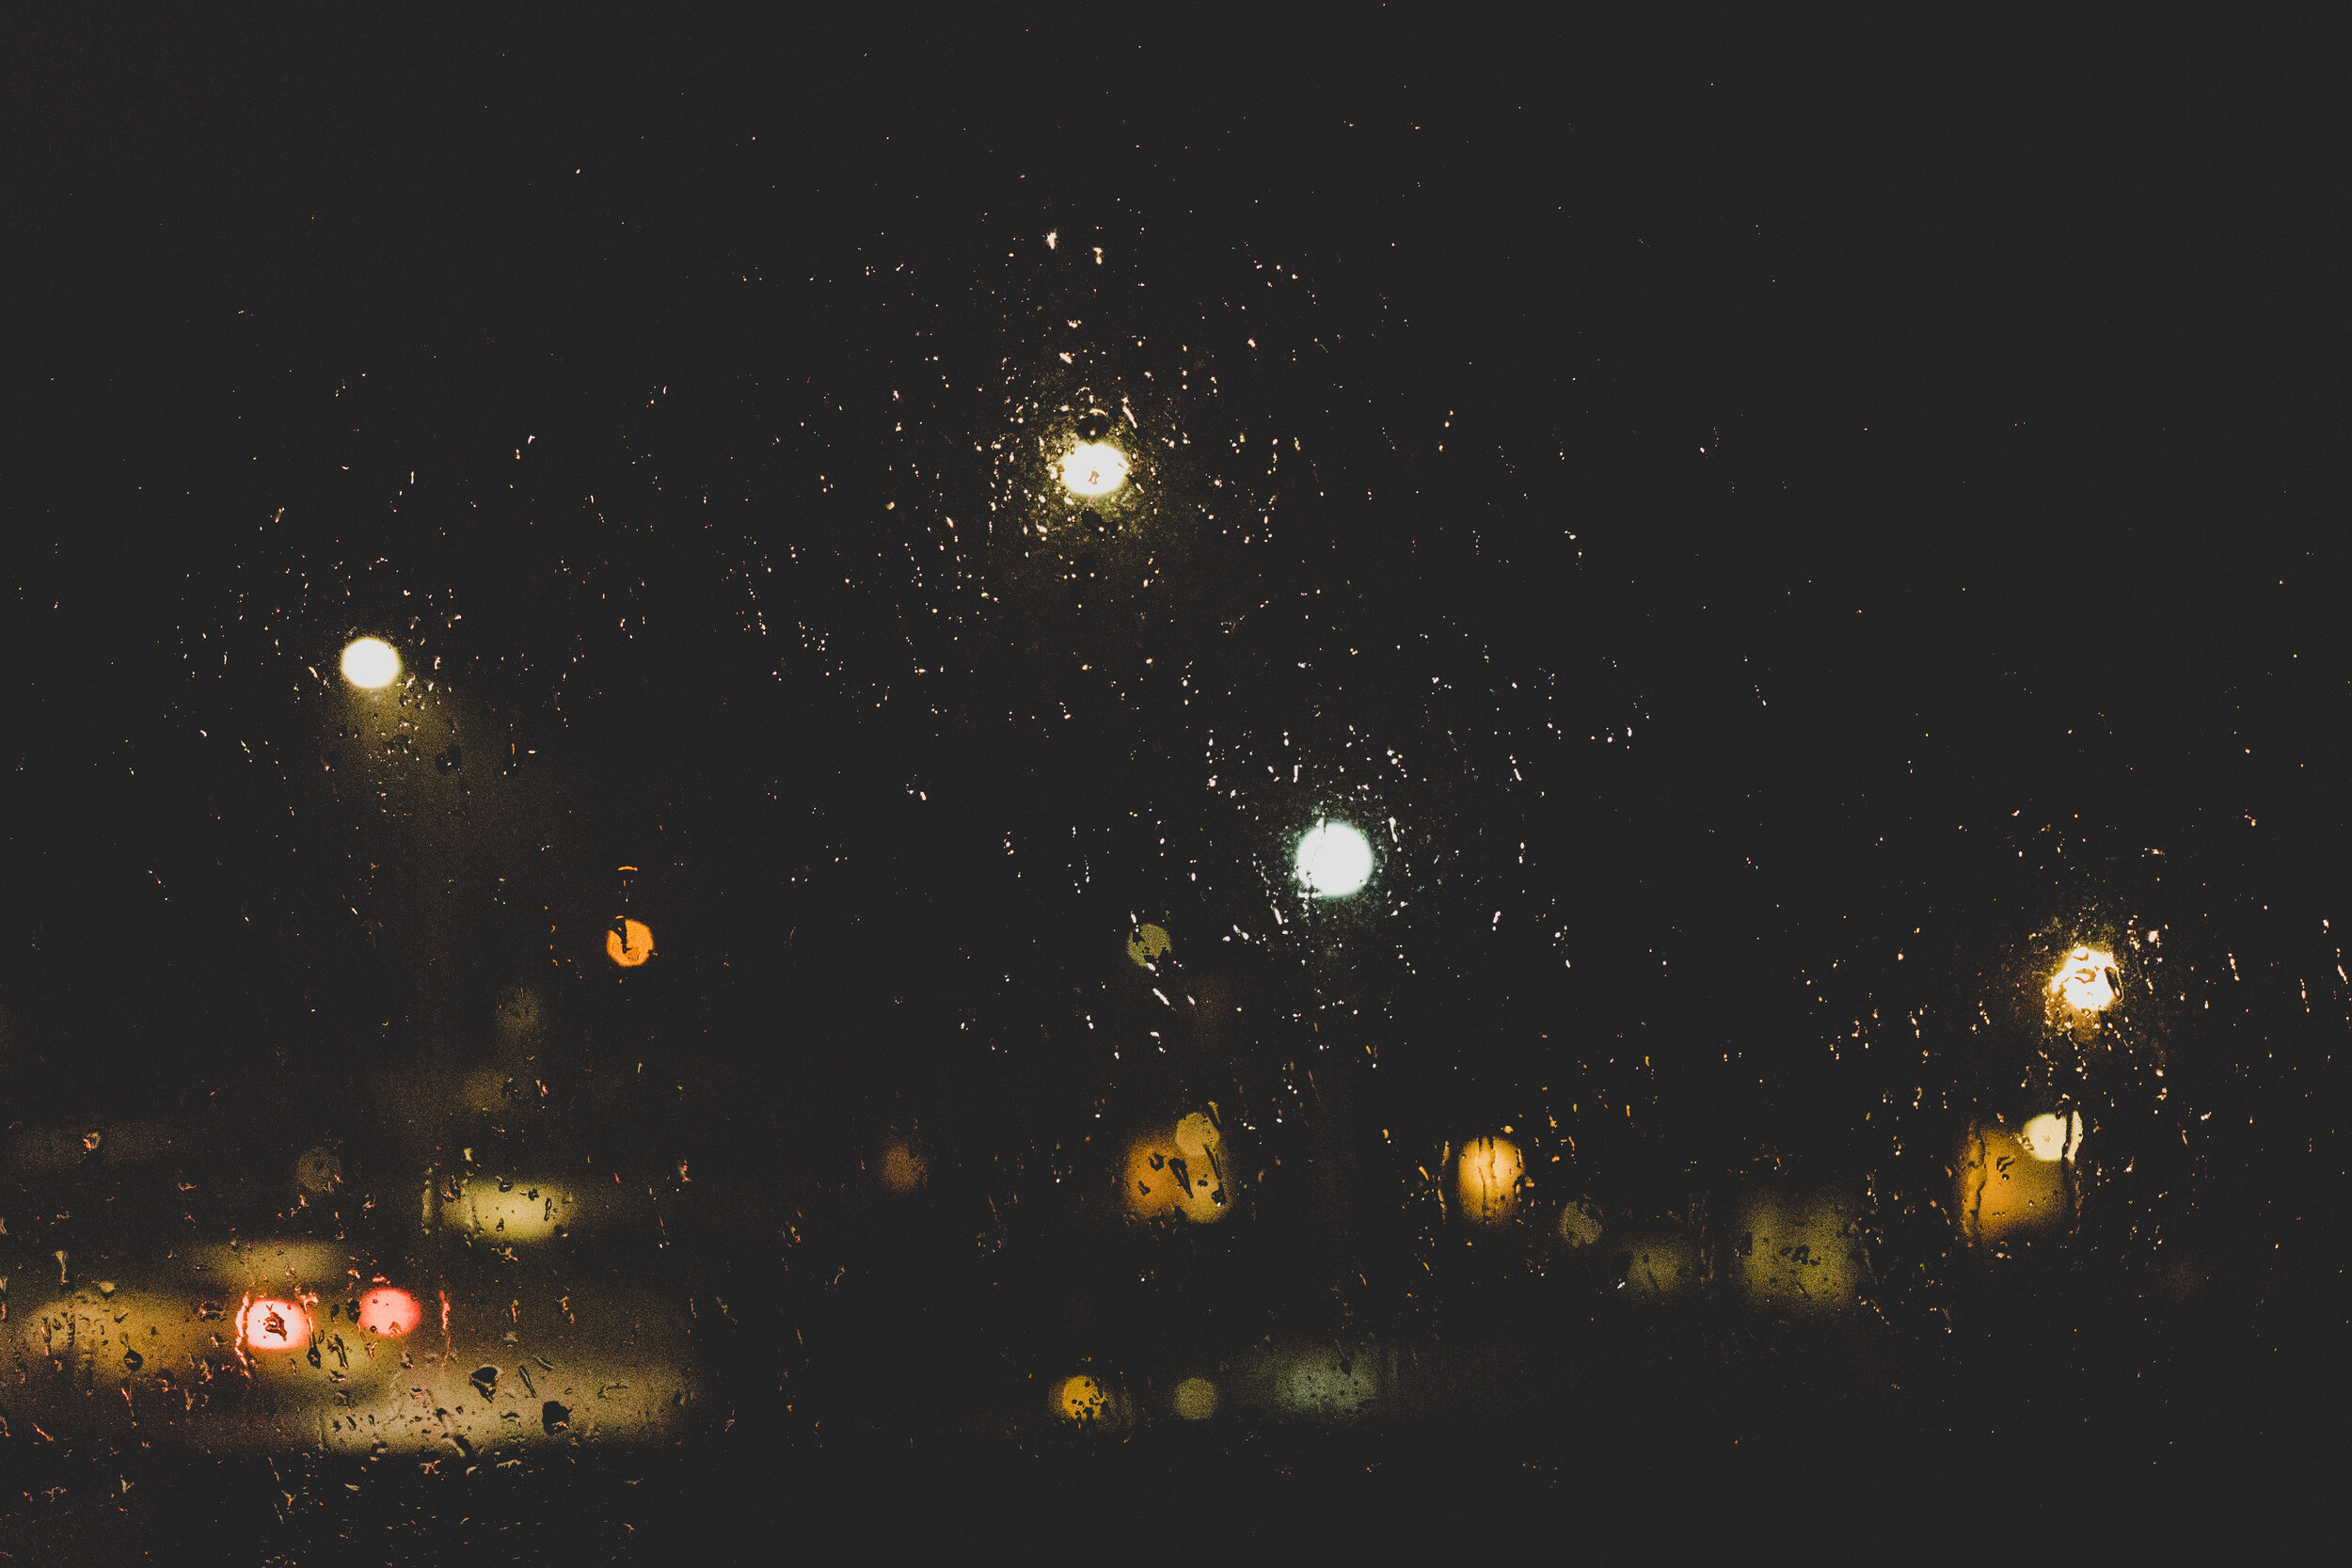 Blurry raindrops on, and cars passing by, a window